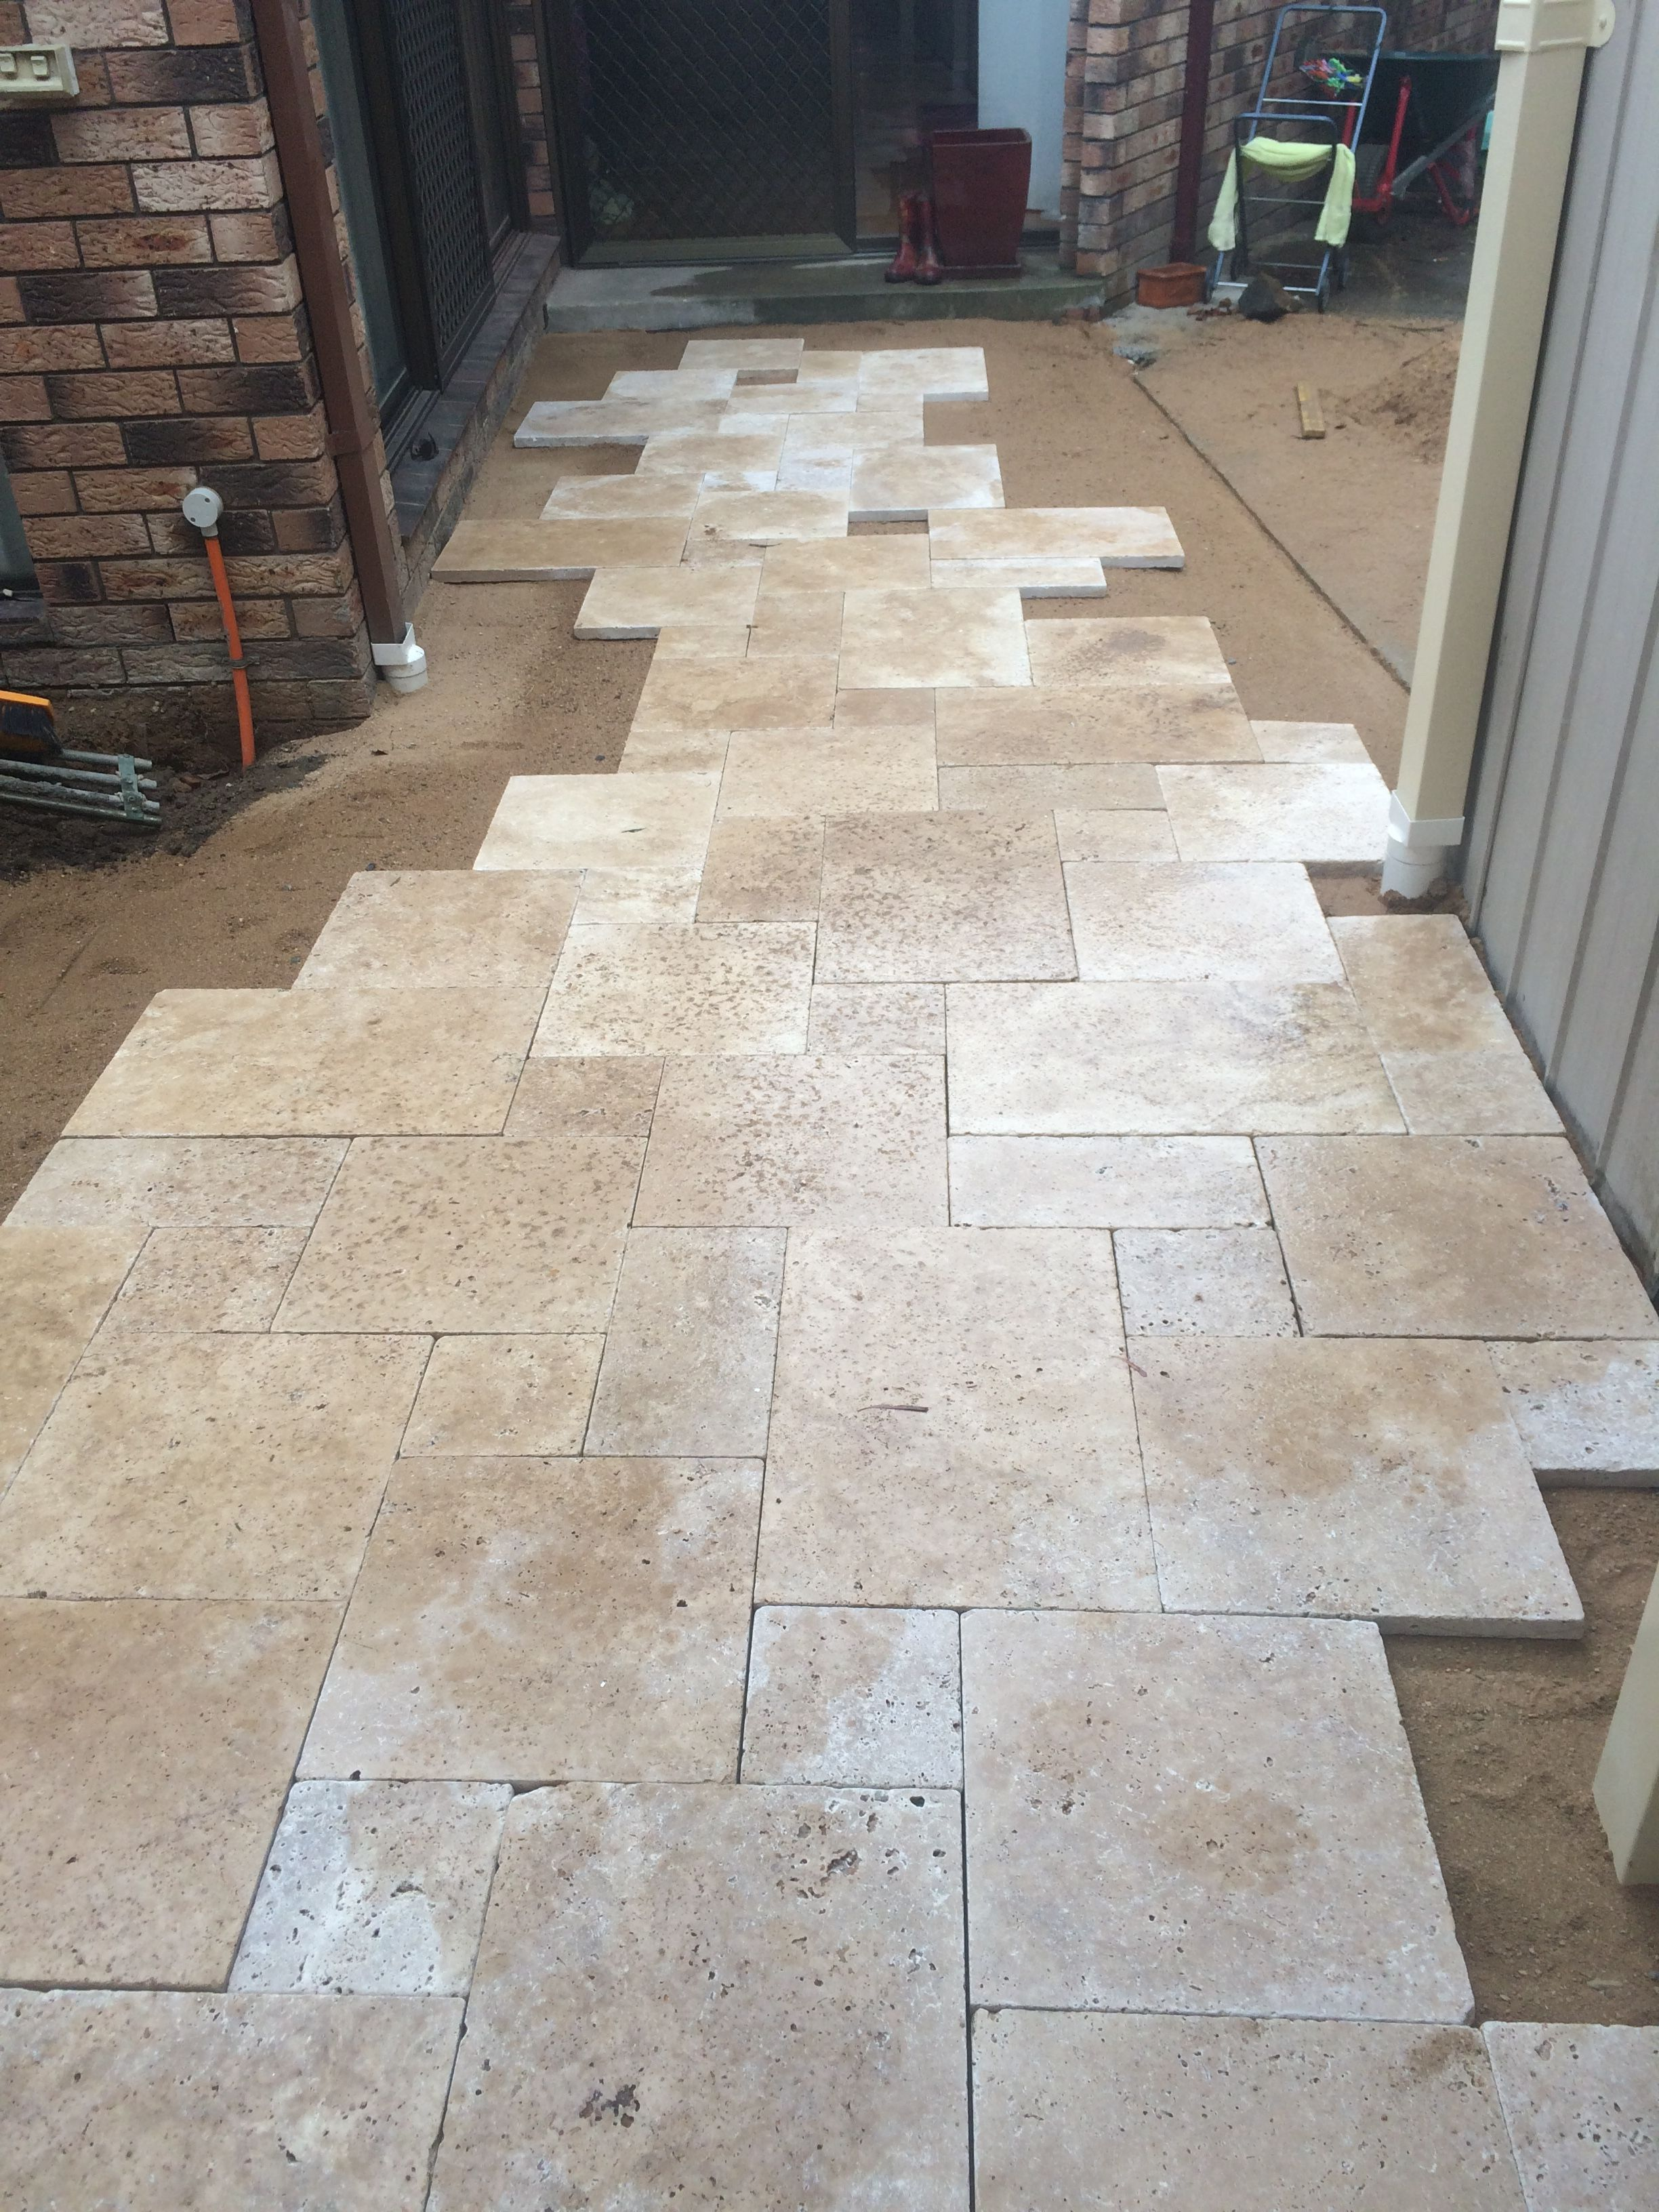 Fussboden Wohnzimmer Ideen Laying French Pattern Travertine Bodenbeläge Pinterest